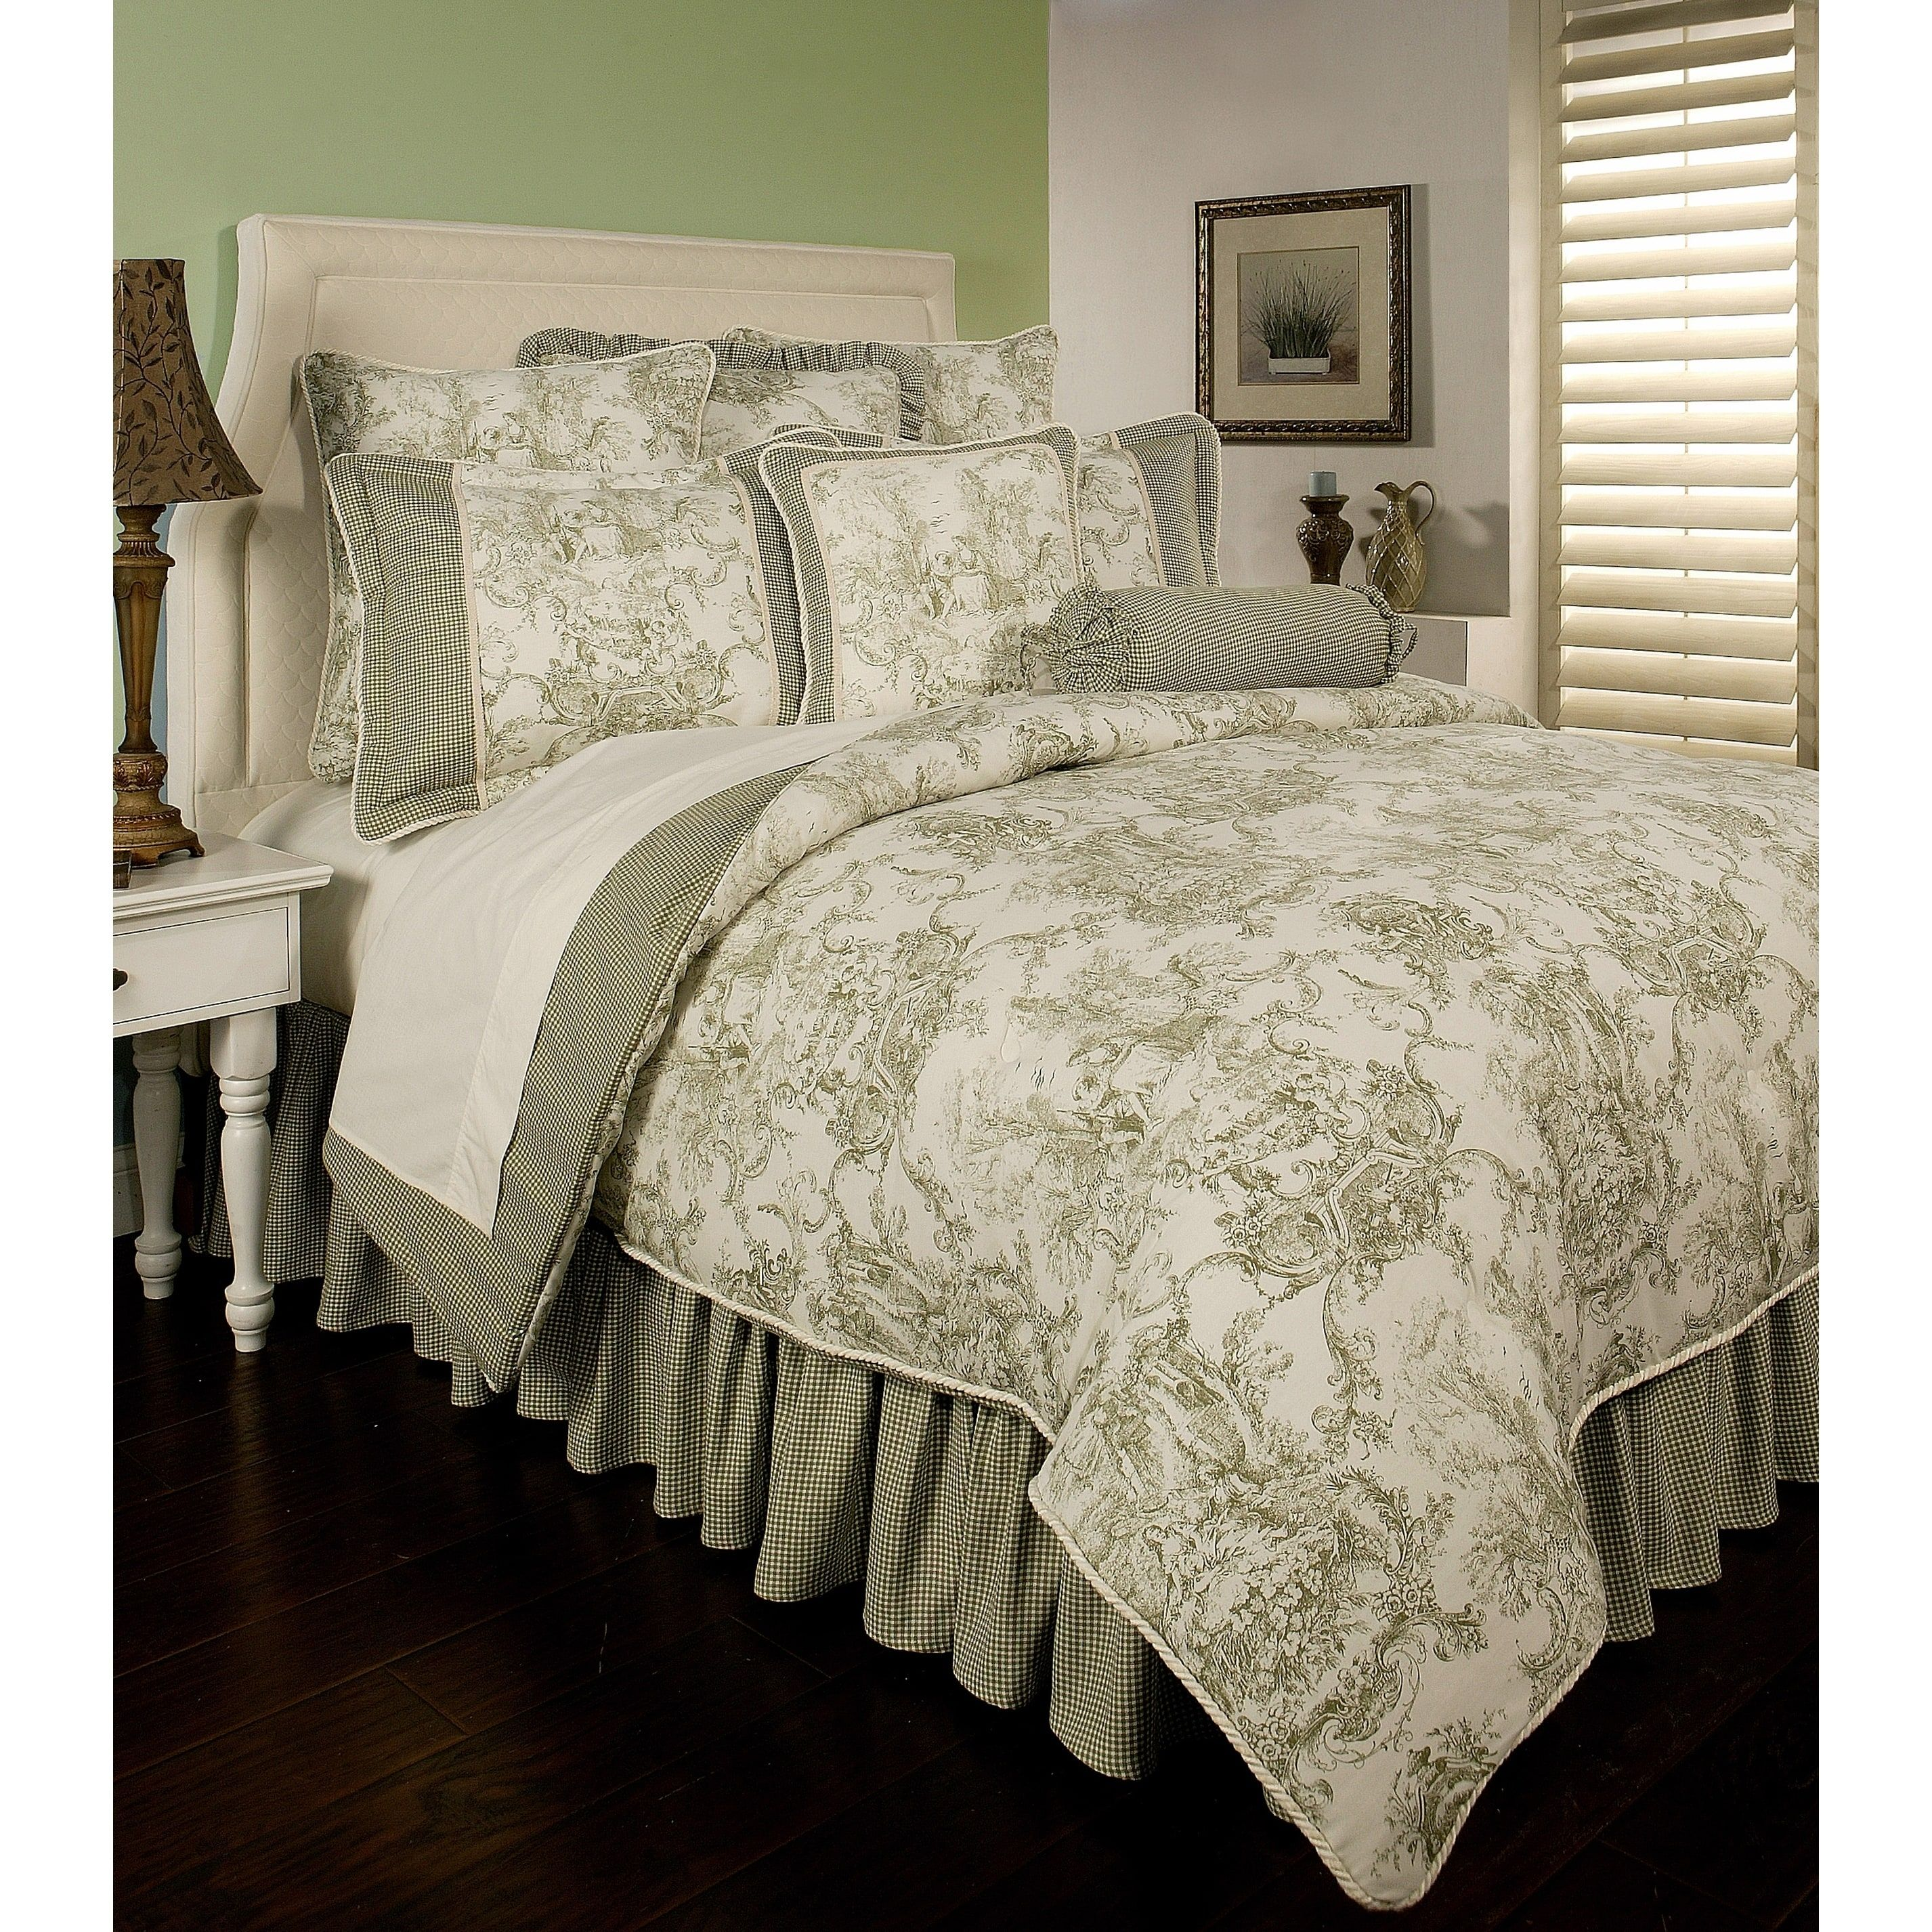 PCHF Country Toile Sage 6piece Comforter Set Luxury